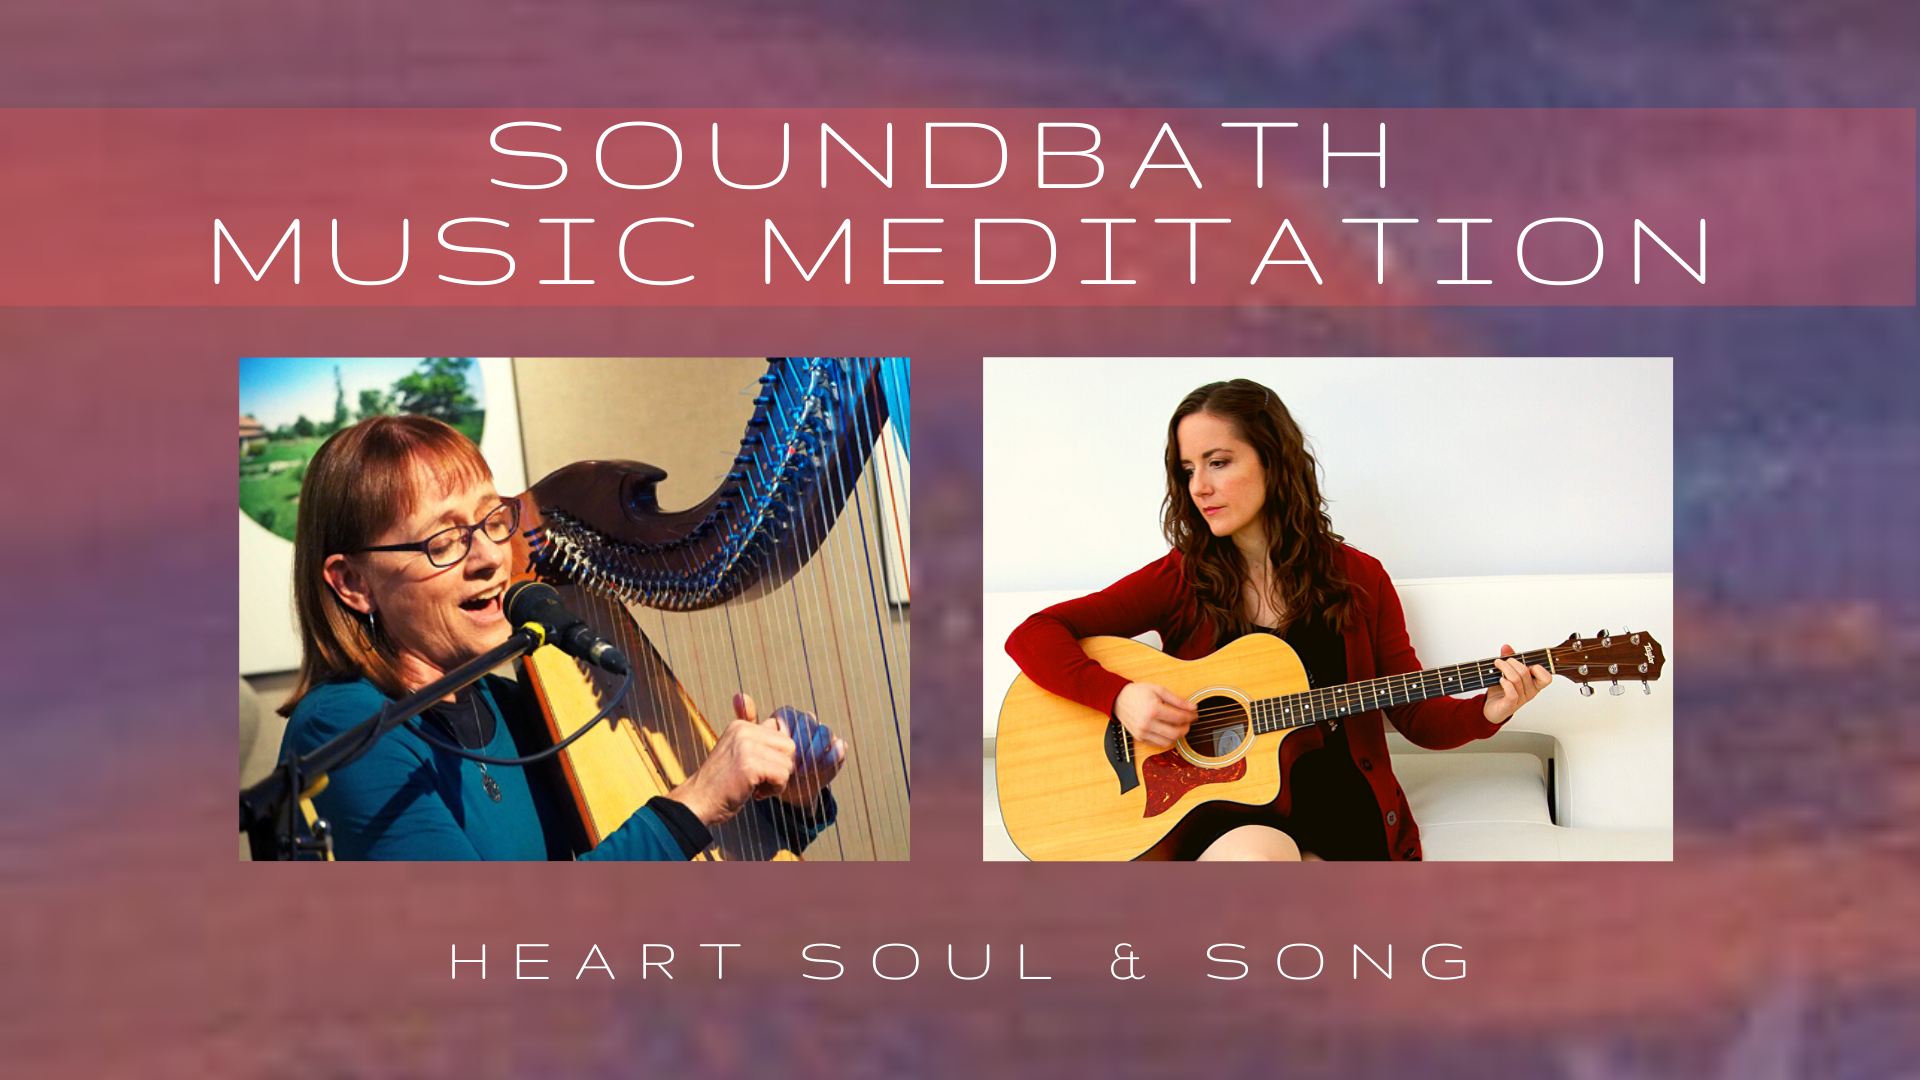 Soundbath Music Meditation YEG